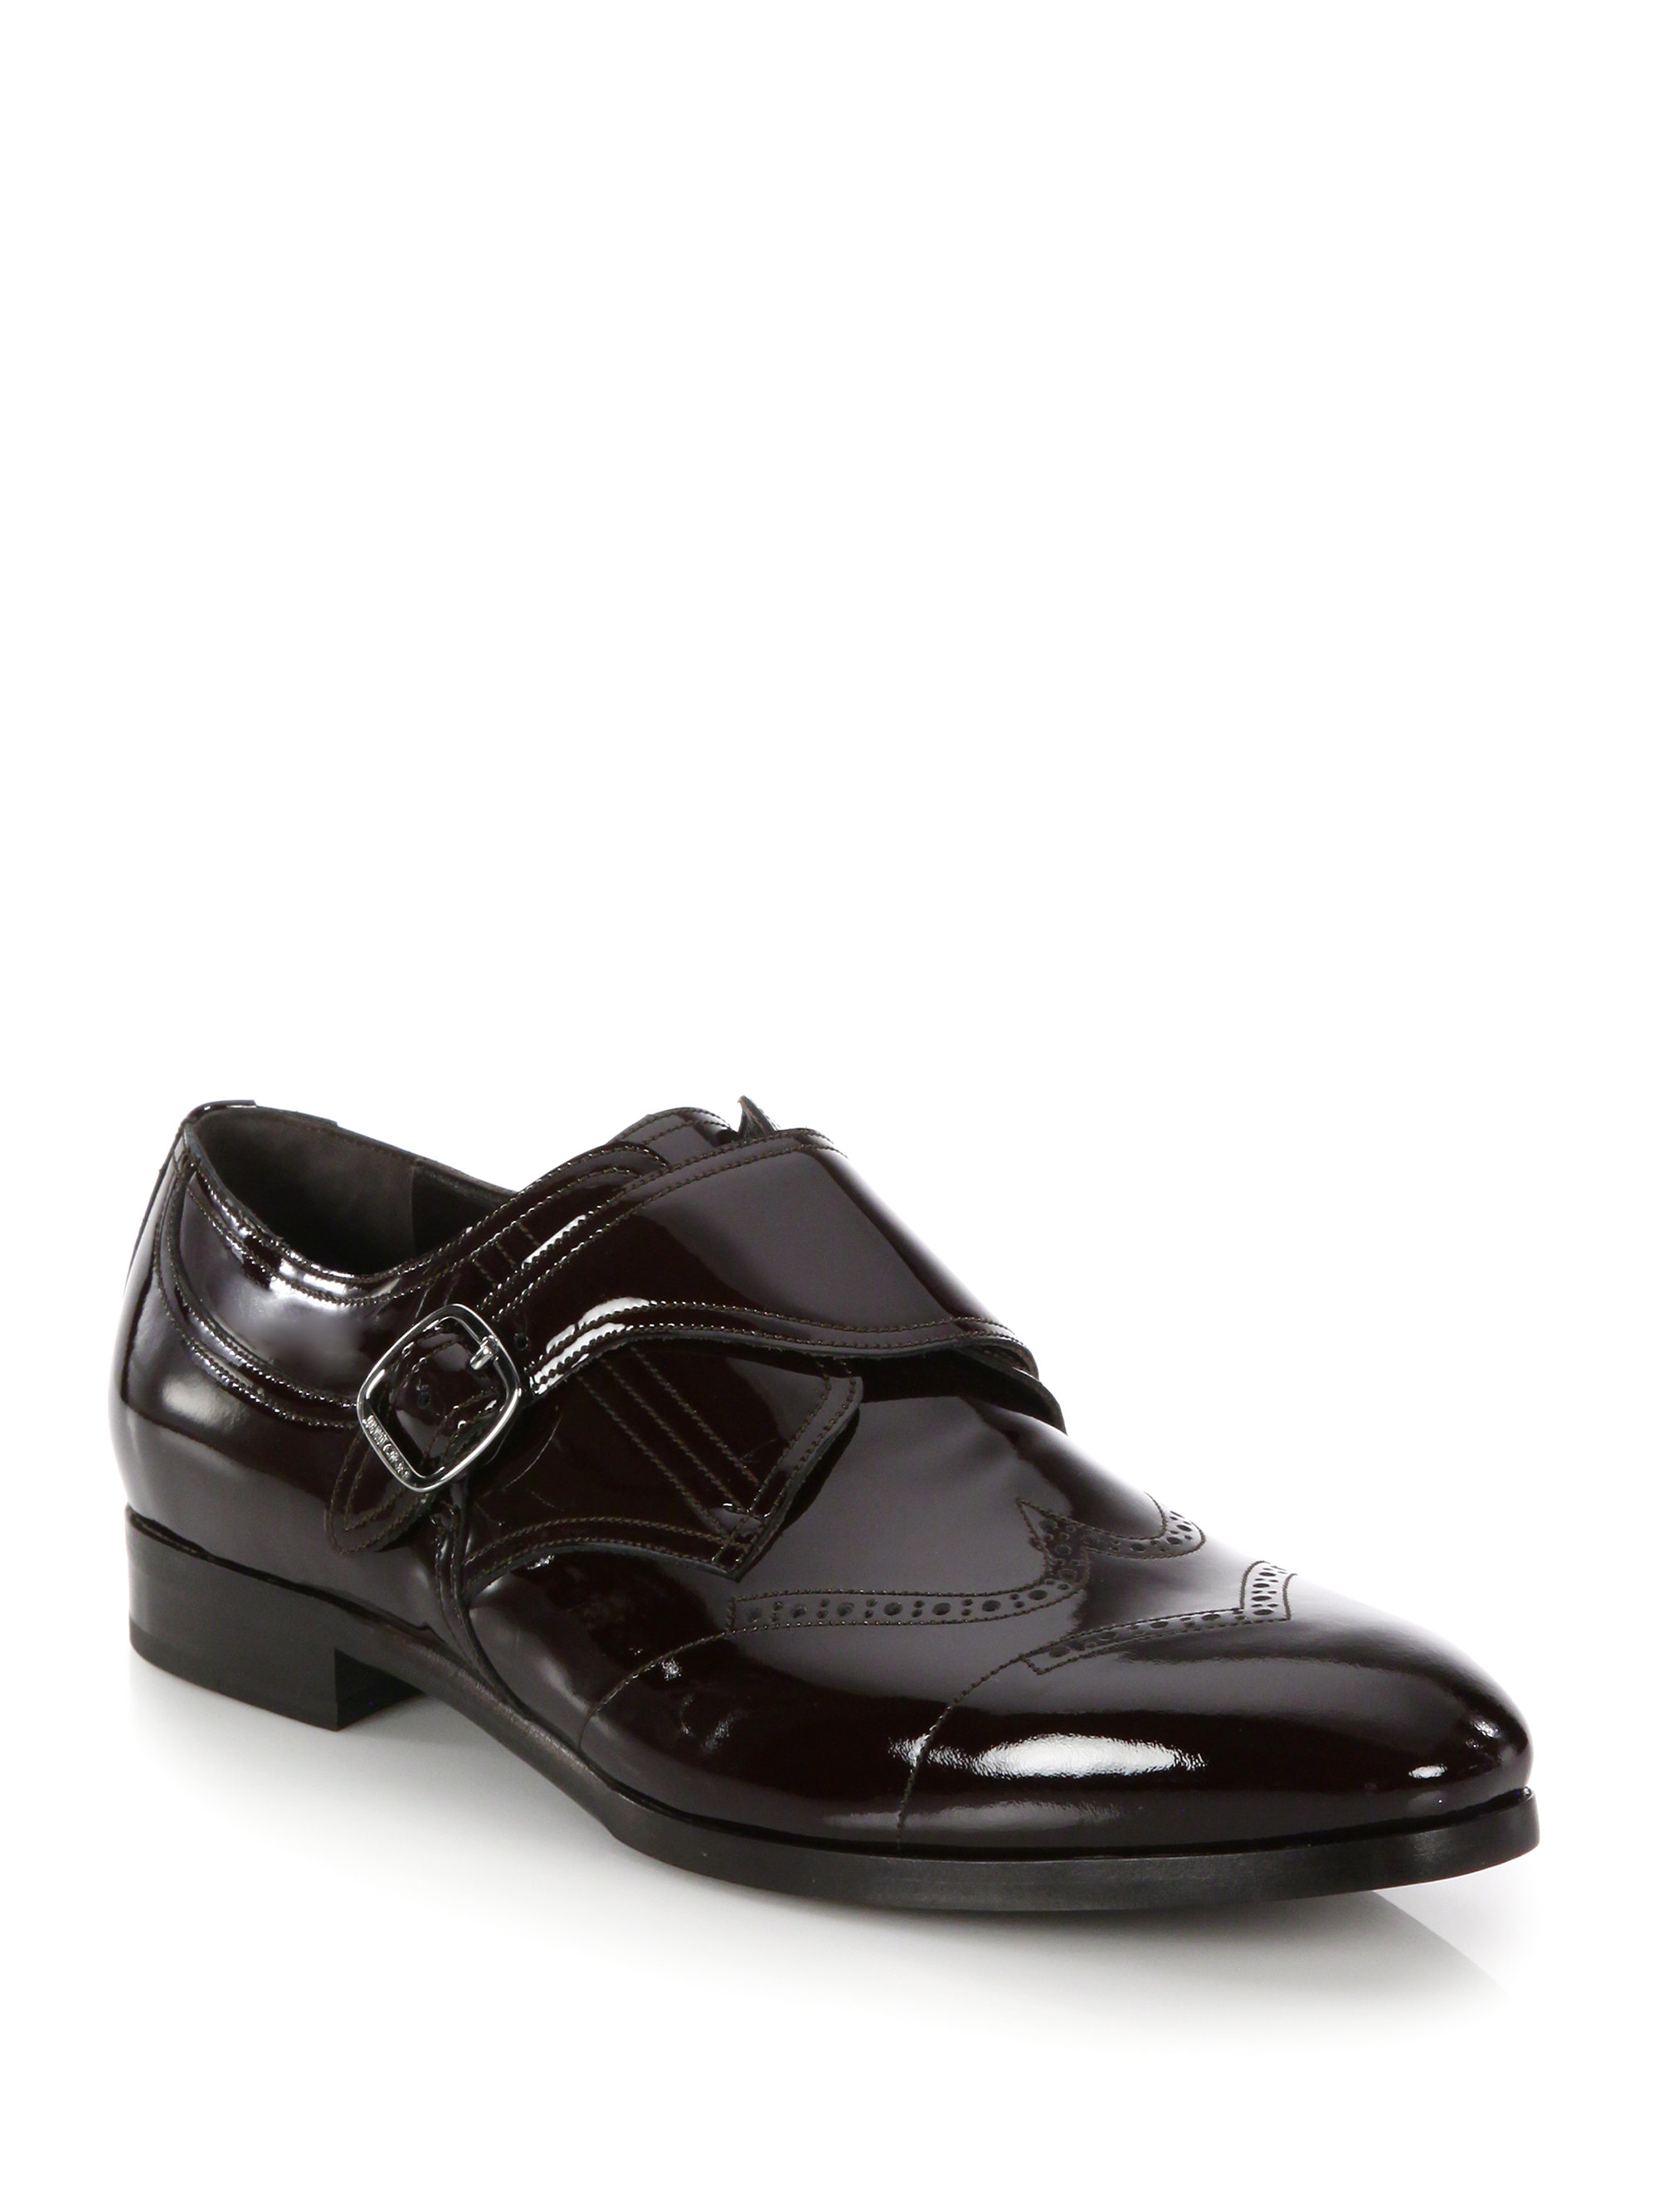 jimmy choo patent leather monk shoes in black for